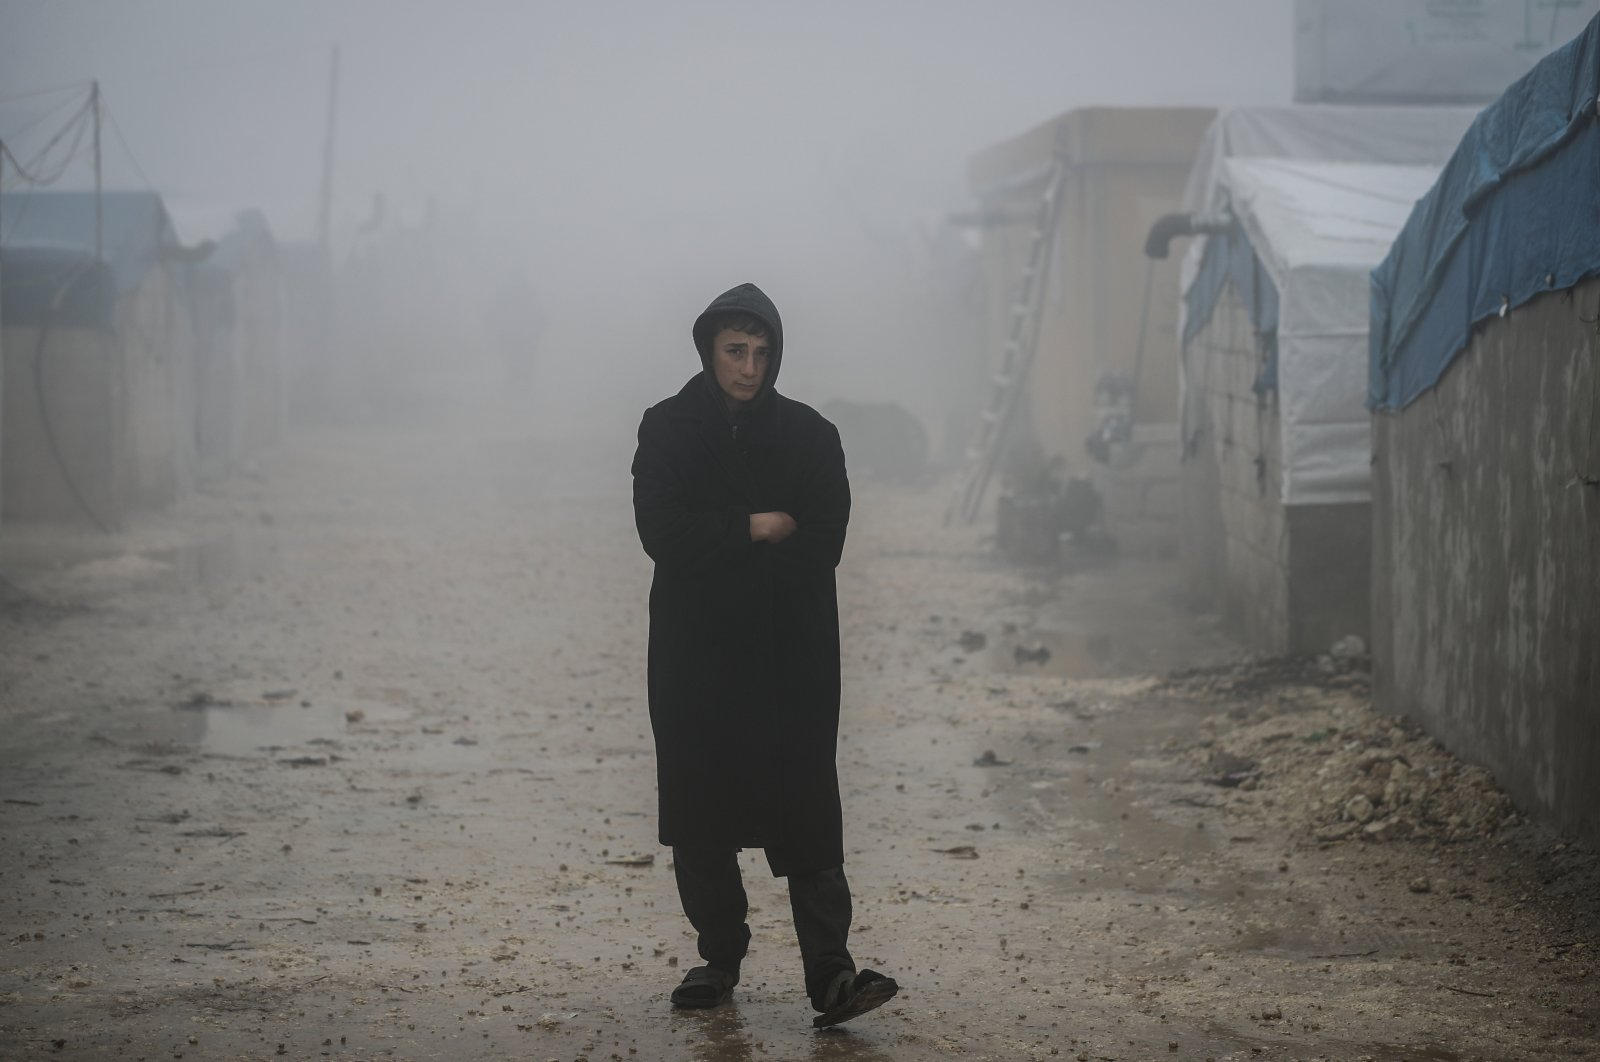 ASyrian boy stands on a muddy passage at a camp for internally displaced people, near the village of Barisha, Syria, Jan. 20, 2021. (Photo by Getty Images)